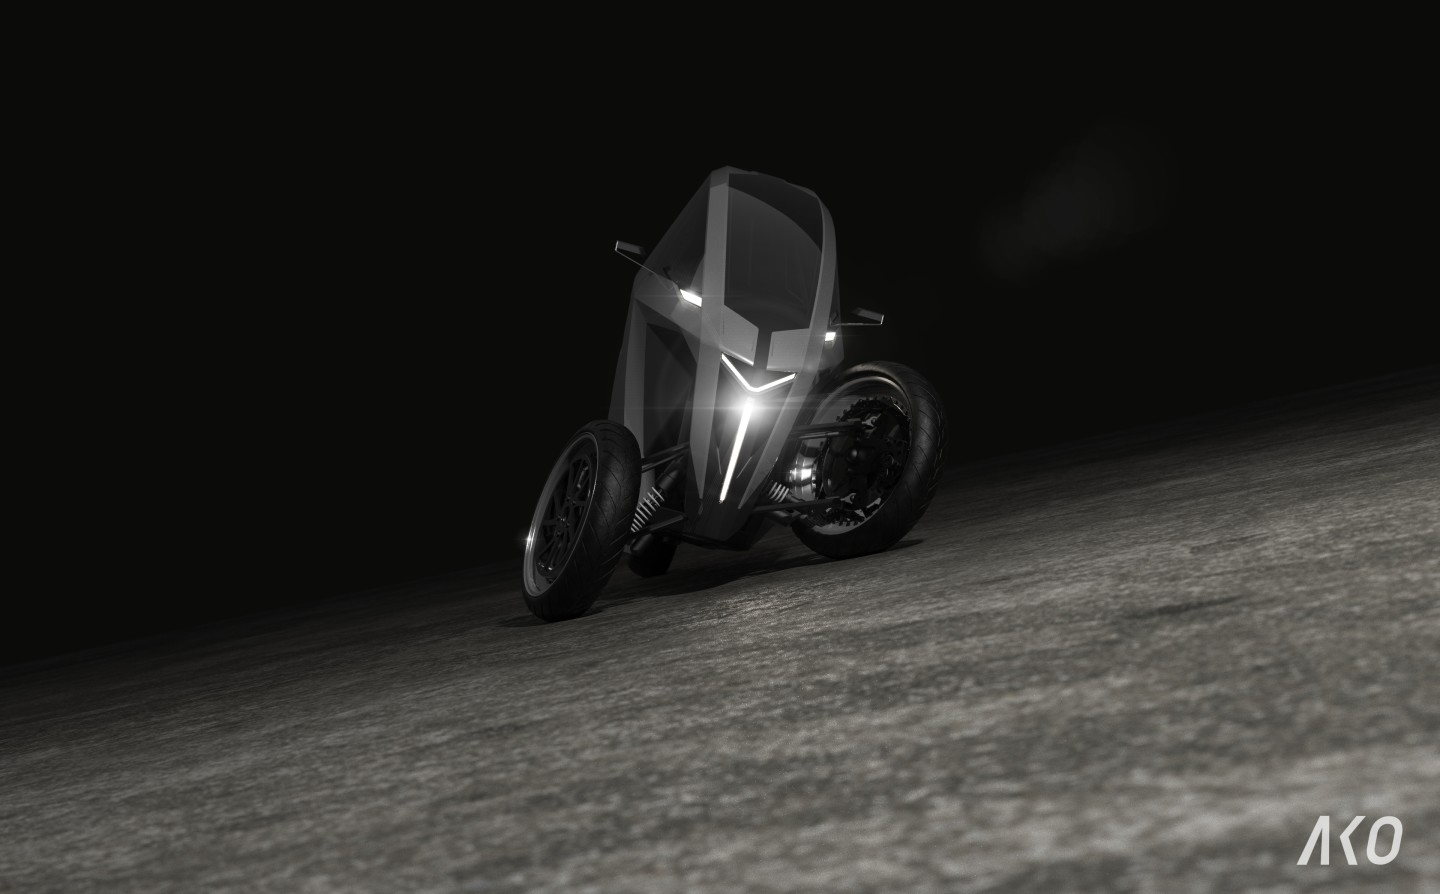 The proprietary tilting mechanism will see the AKO Trike lean into bends at up to 30 degrees